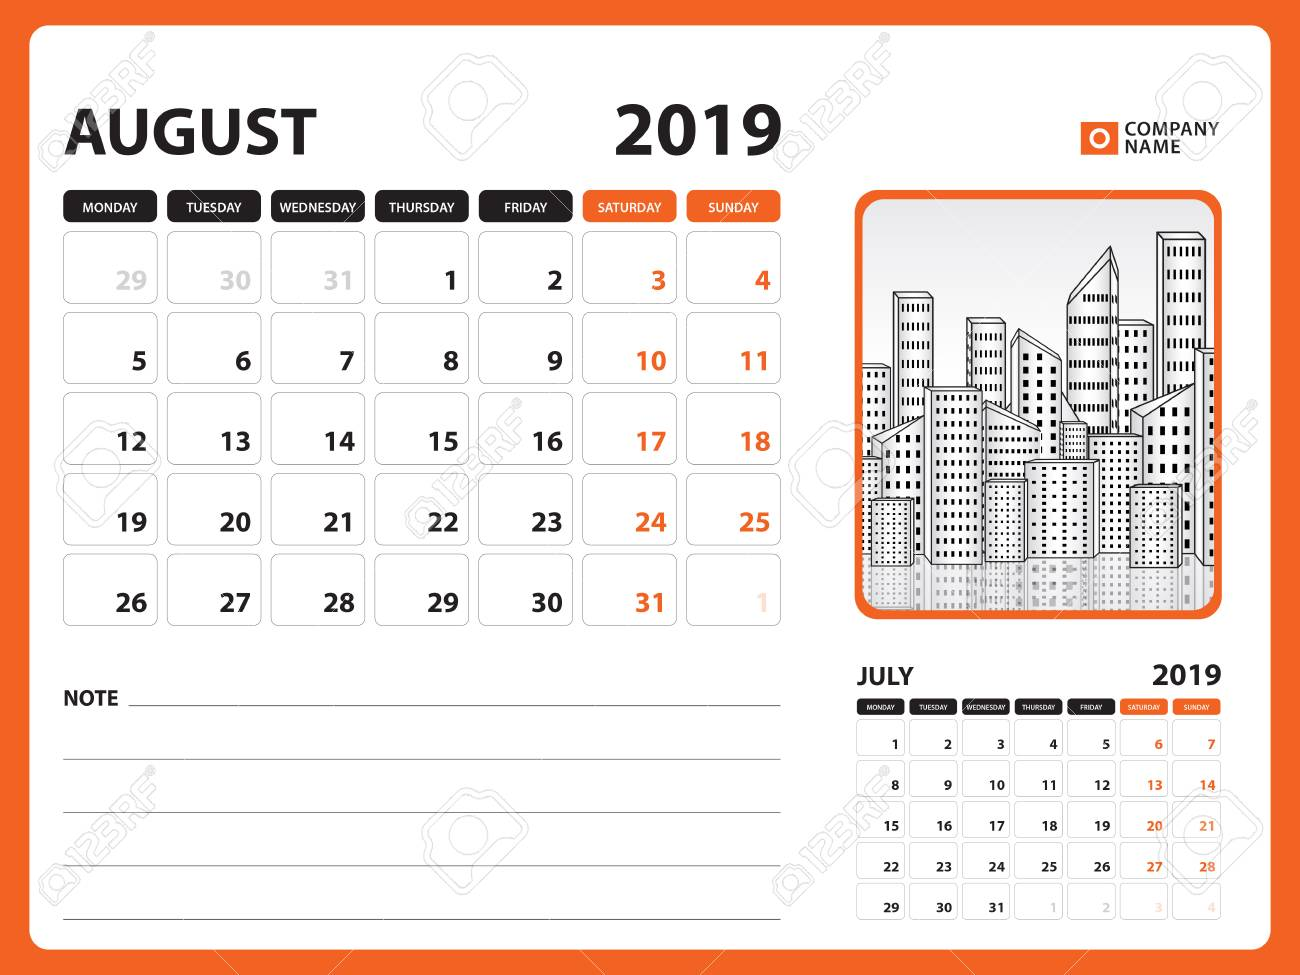 Desk Calendar For August 2019 Template Printable Calendar Planner